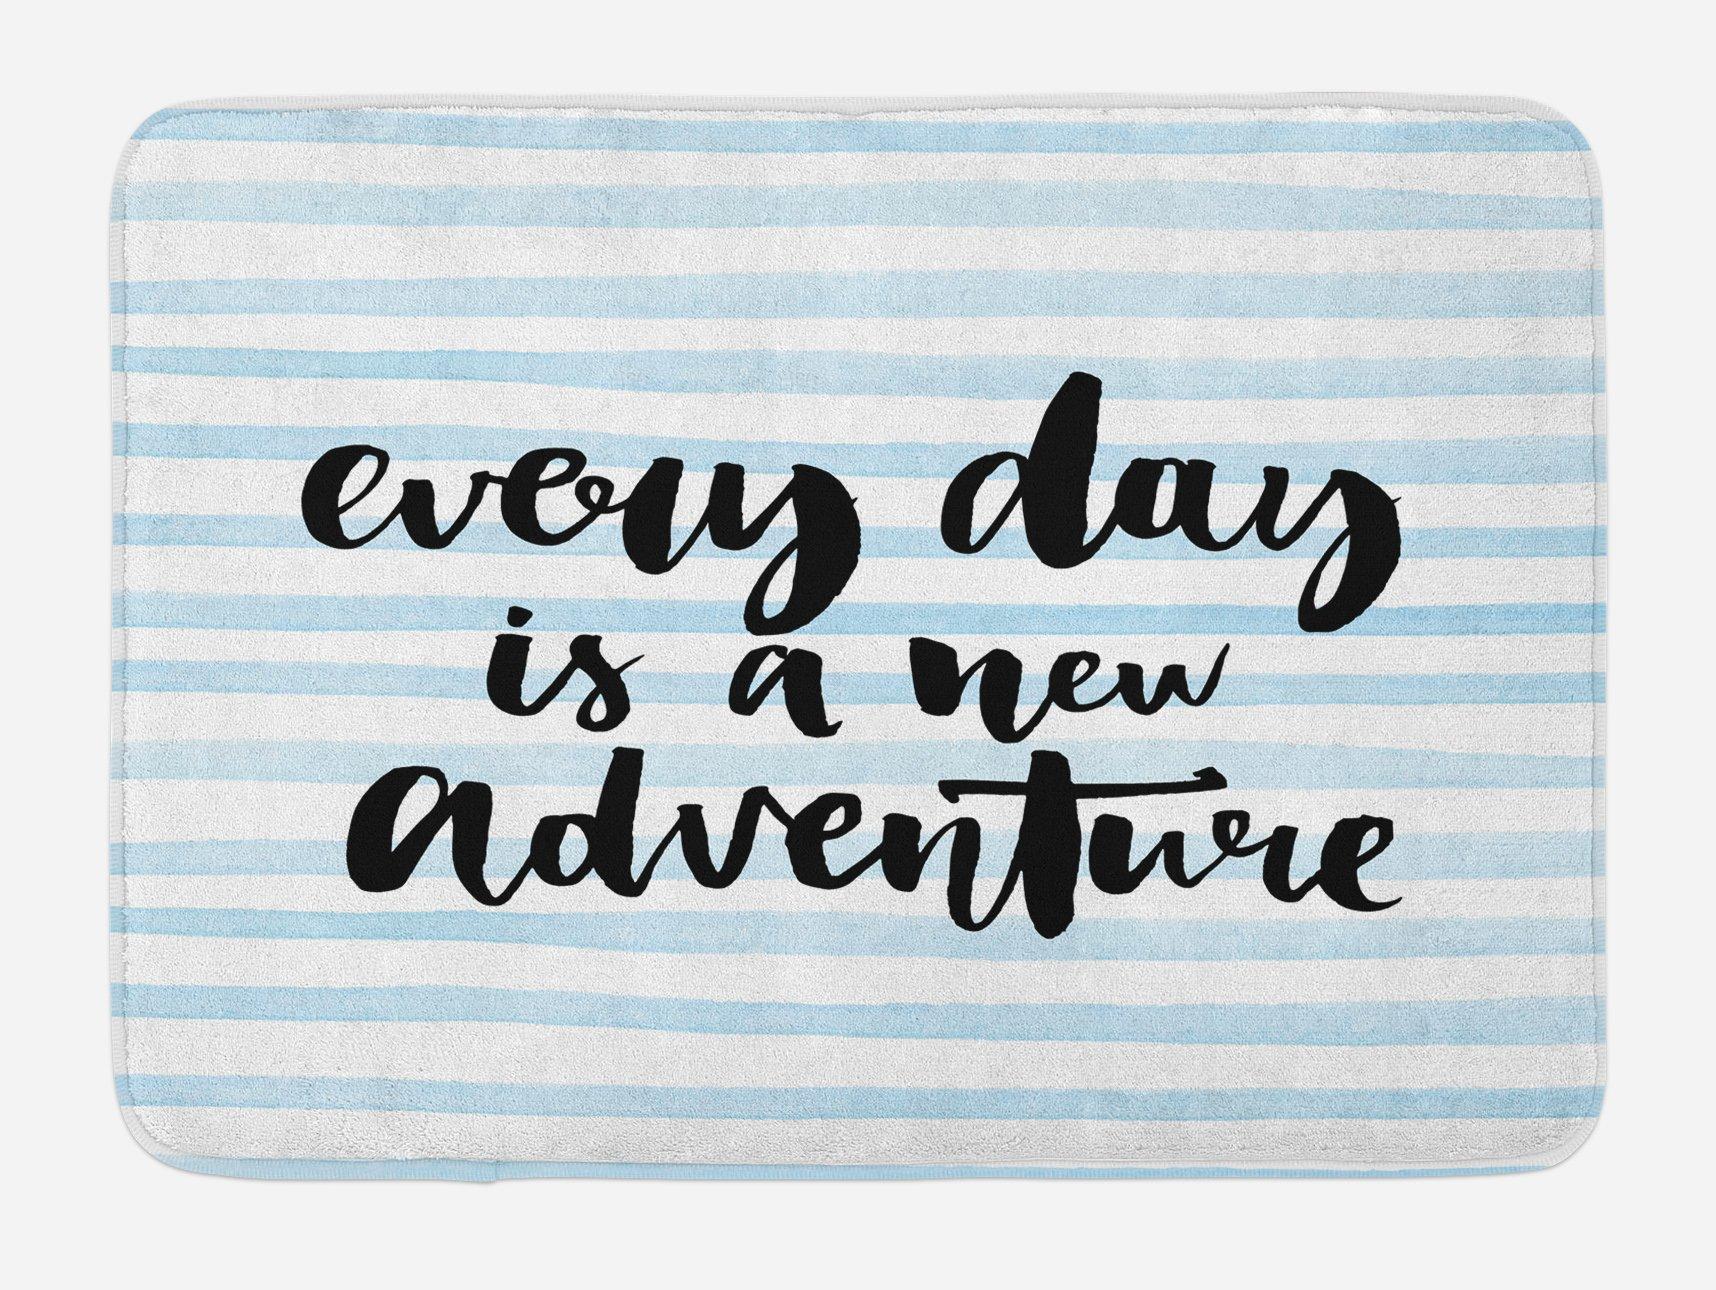 Ambesonne Inspirational Quotes Bath Mat, Every Day is a New Adventure Calligraphy Text Watercolor Stripes Print, Plush Bathroom Decor Mat with Non Slip Backing, 29.5 W X 17.5 W Inches, Pale Blue